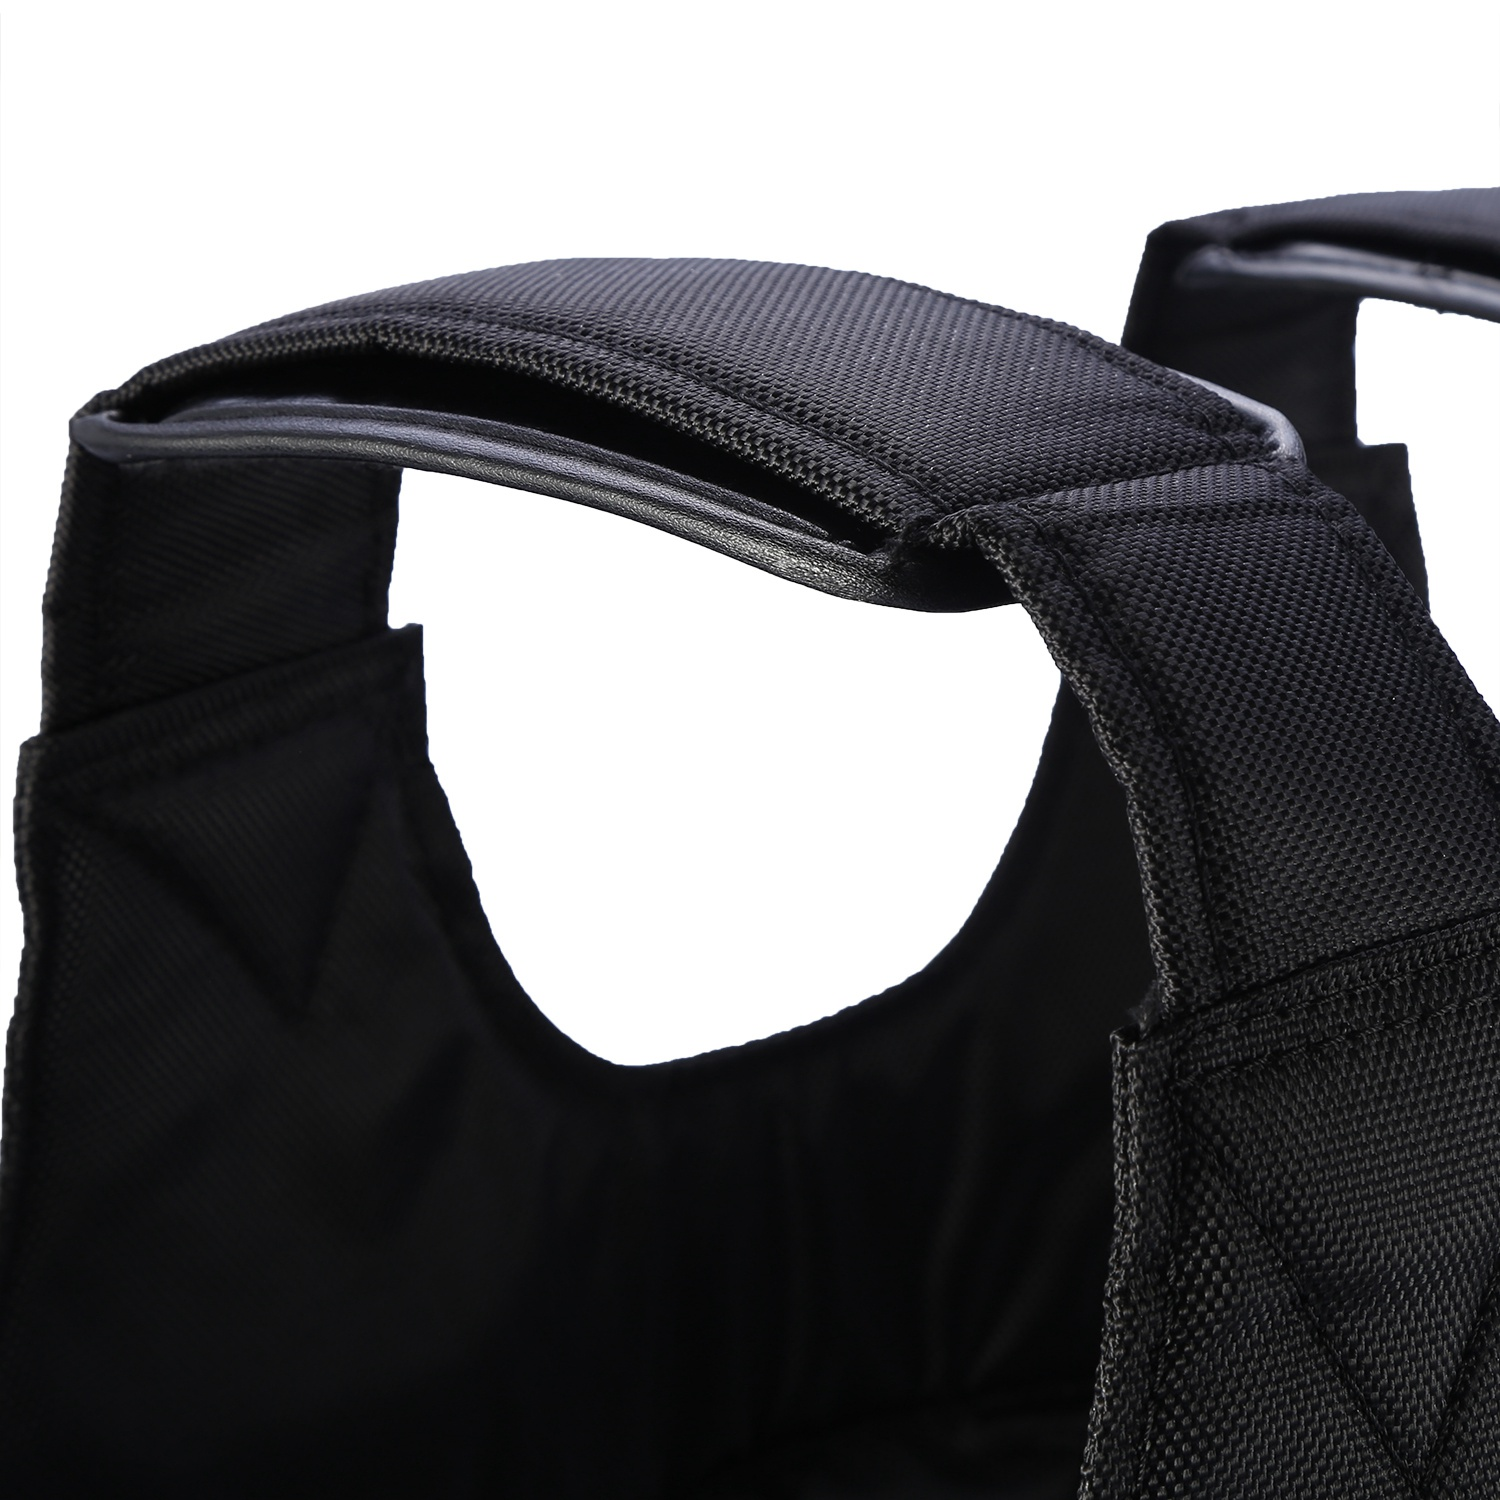 Weighted-Vest-44-110lbs-Weight-Workout-Exercise-Body-Training-Crossfit-Equipment thumbnail 26